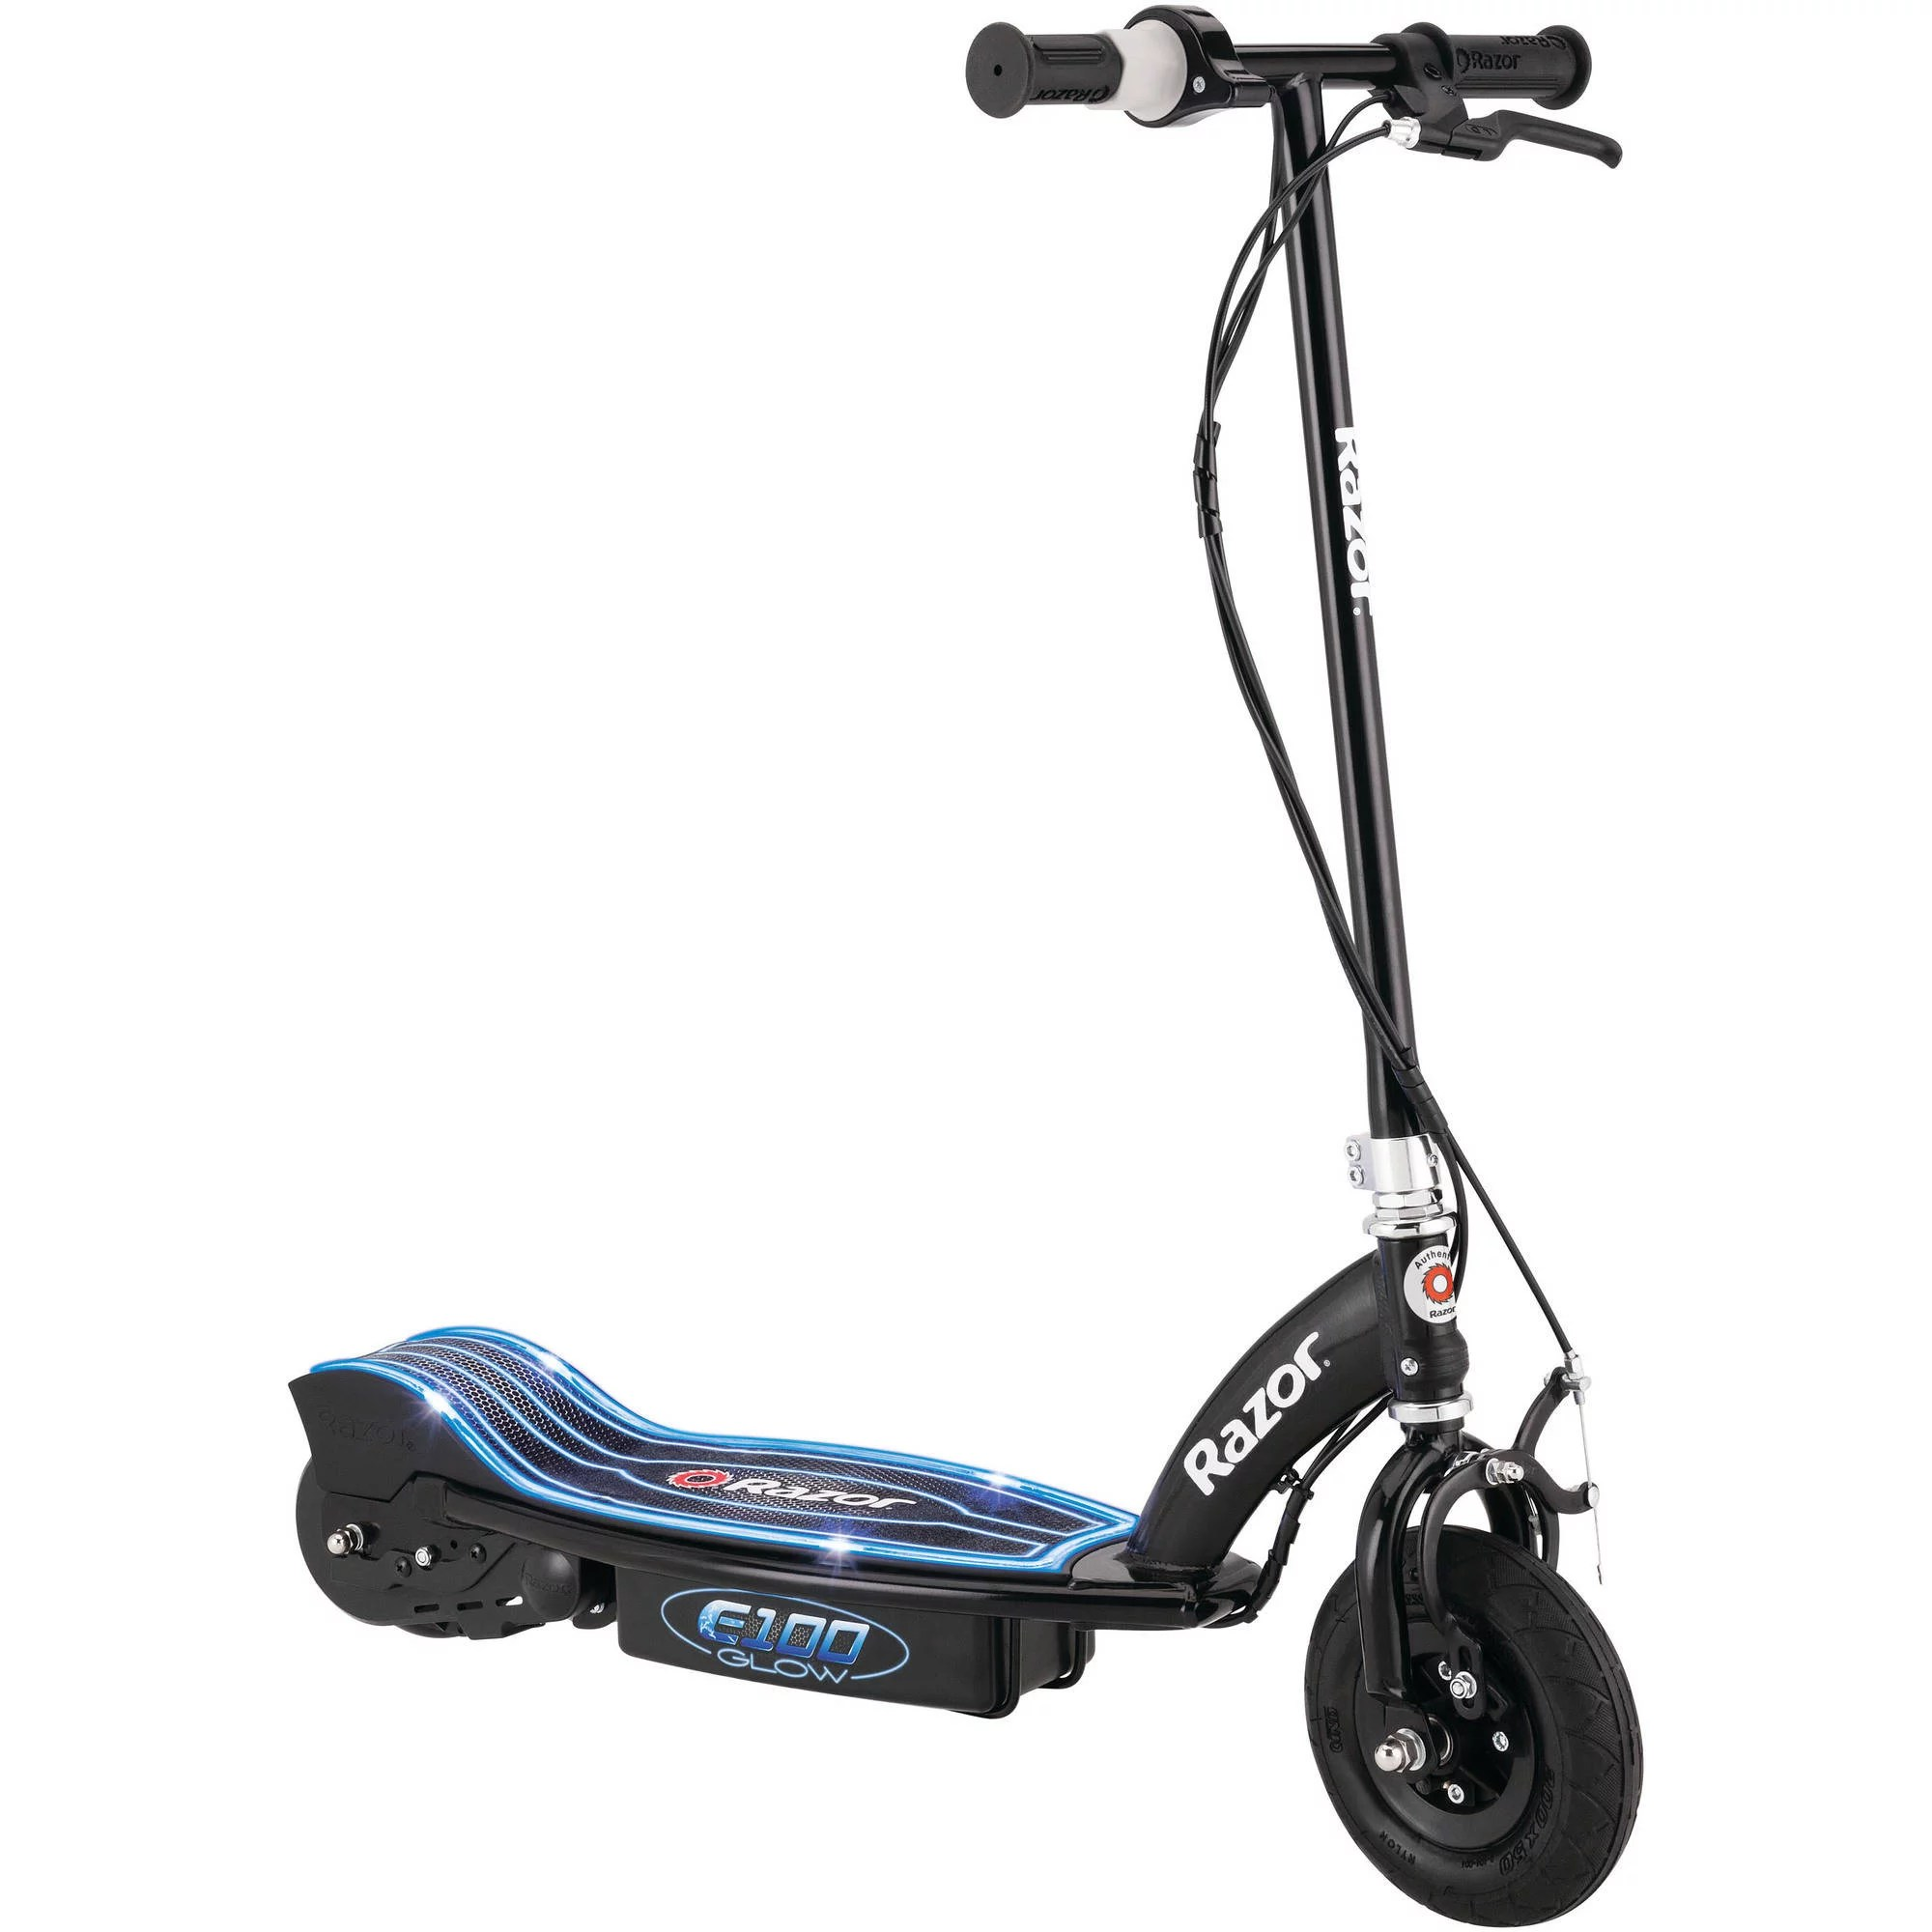 hight resolution of walmart for product image razor e100 electric powered glow electric scooter black satellite electric scooter razor wiring diagram